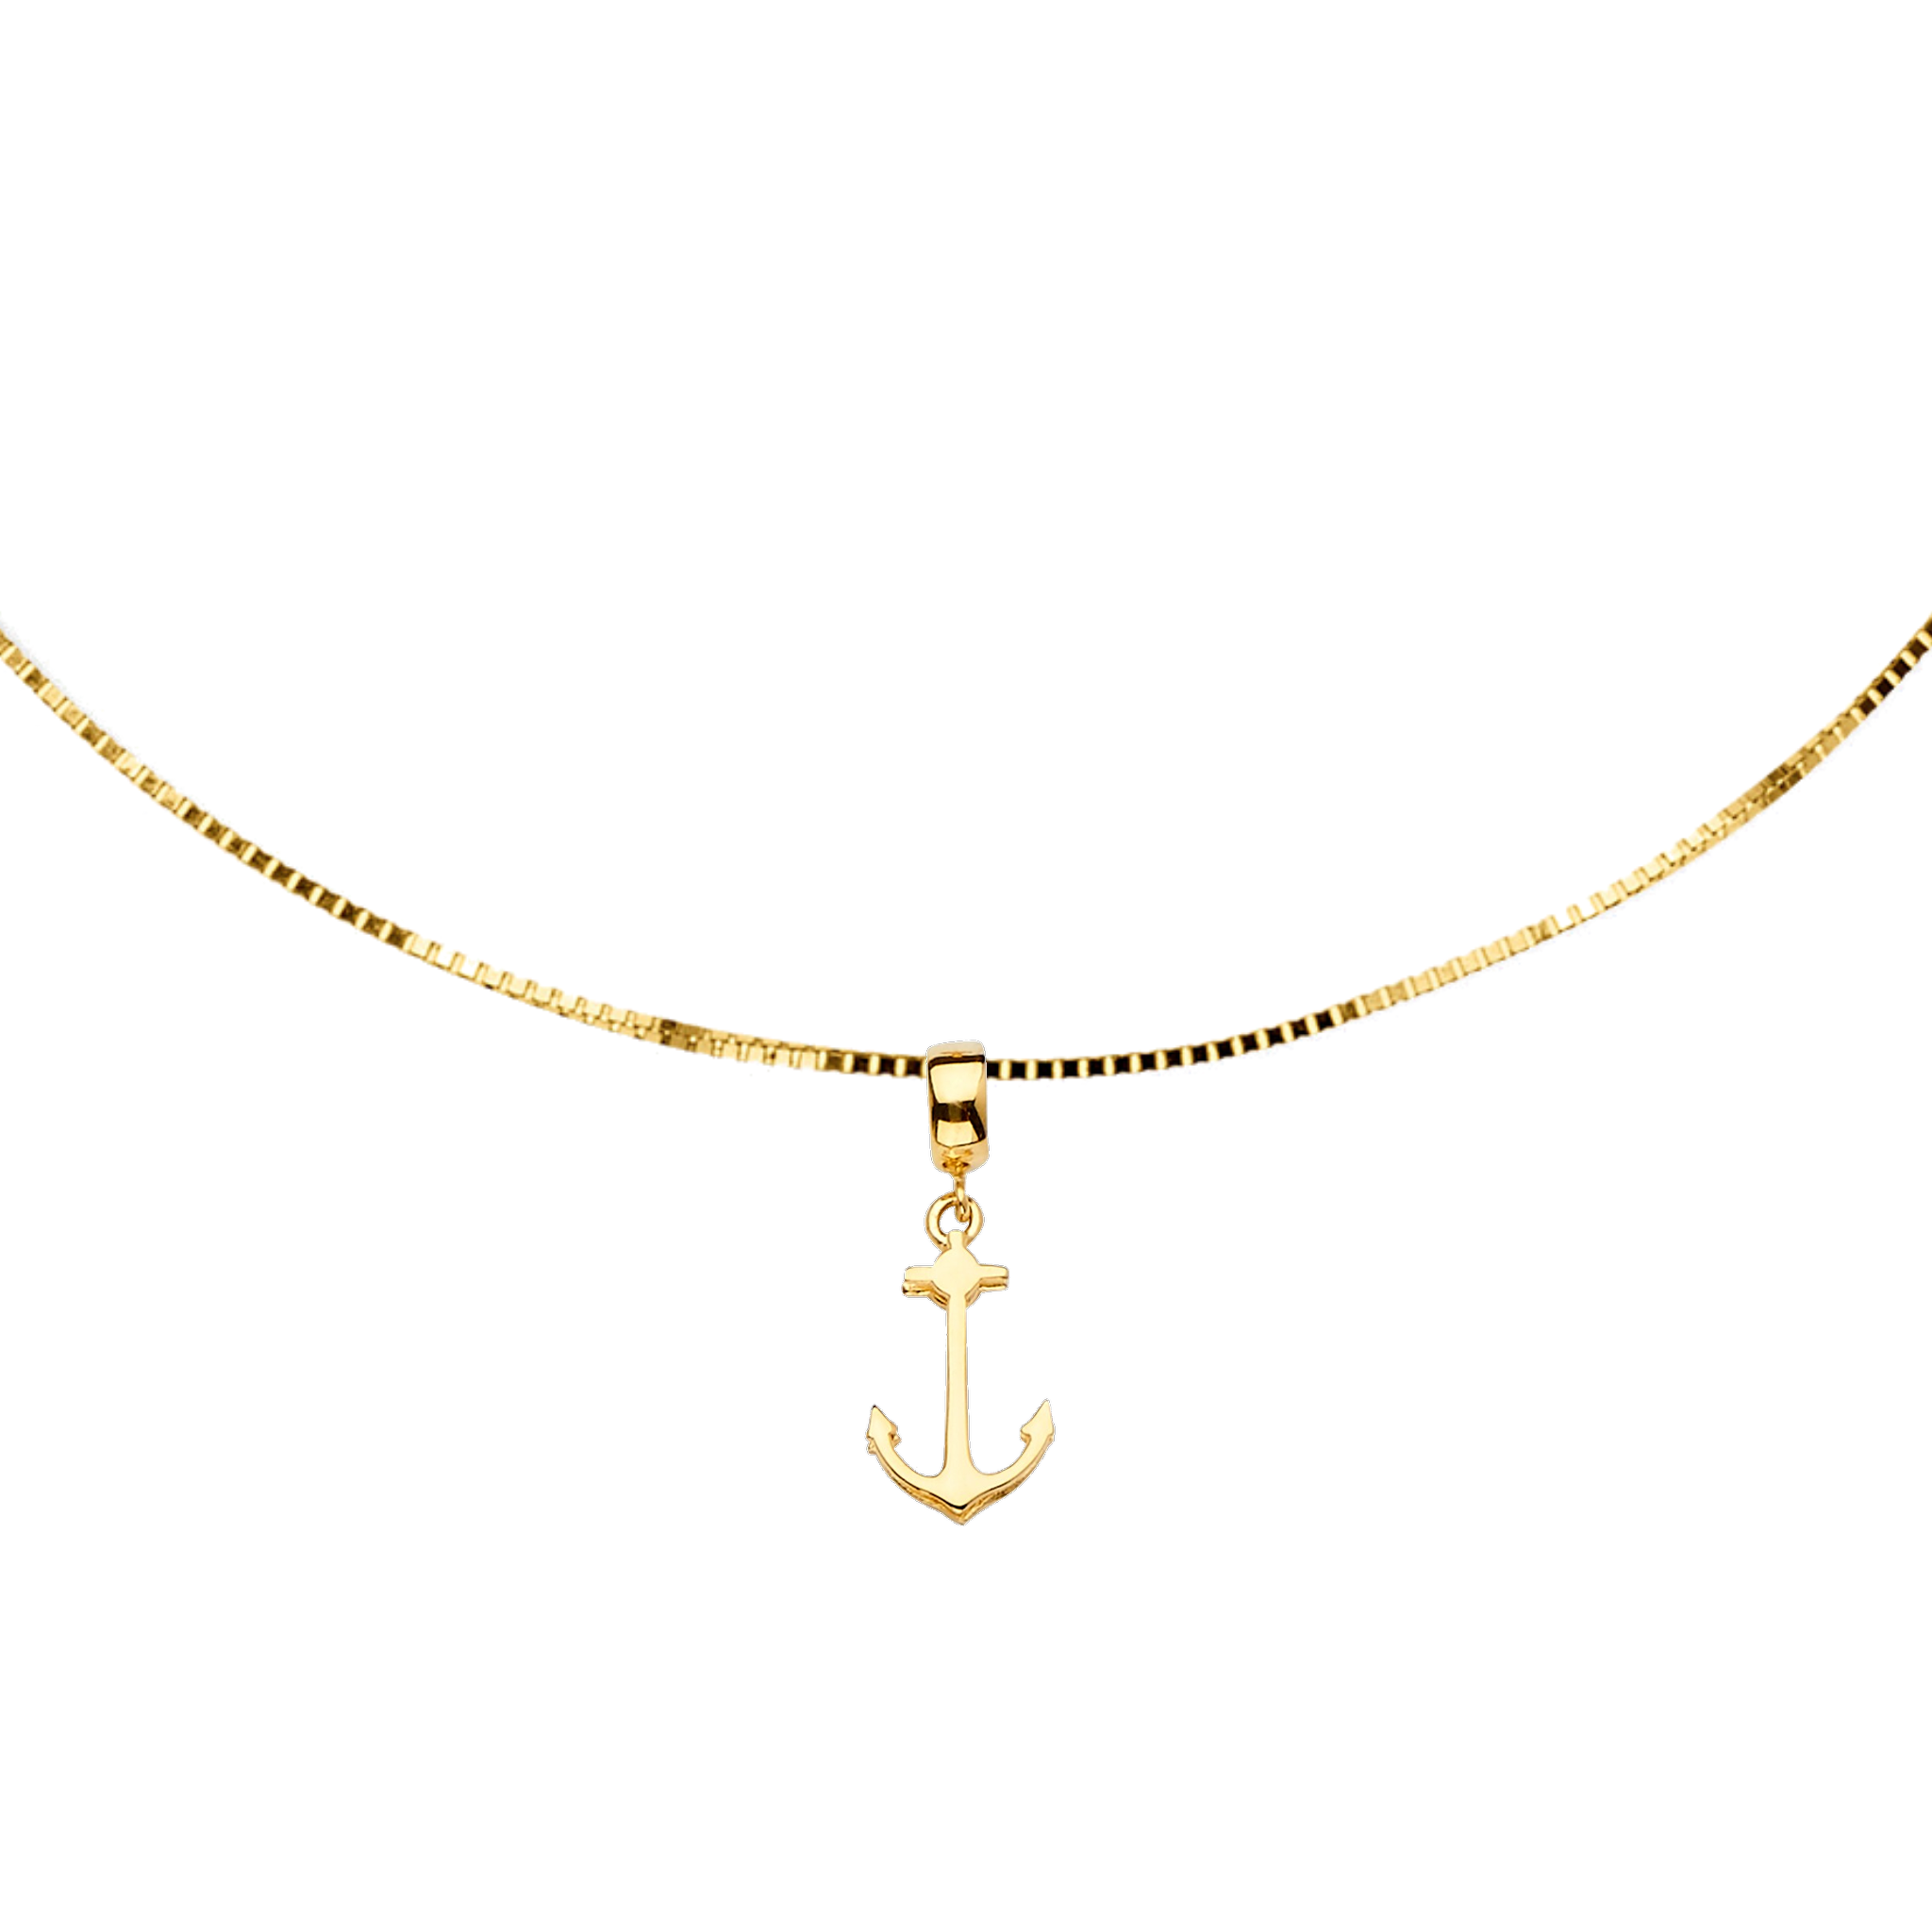 Pier 39 Anchor Choker - 14K Solid Yellow Gold